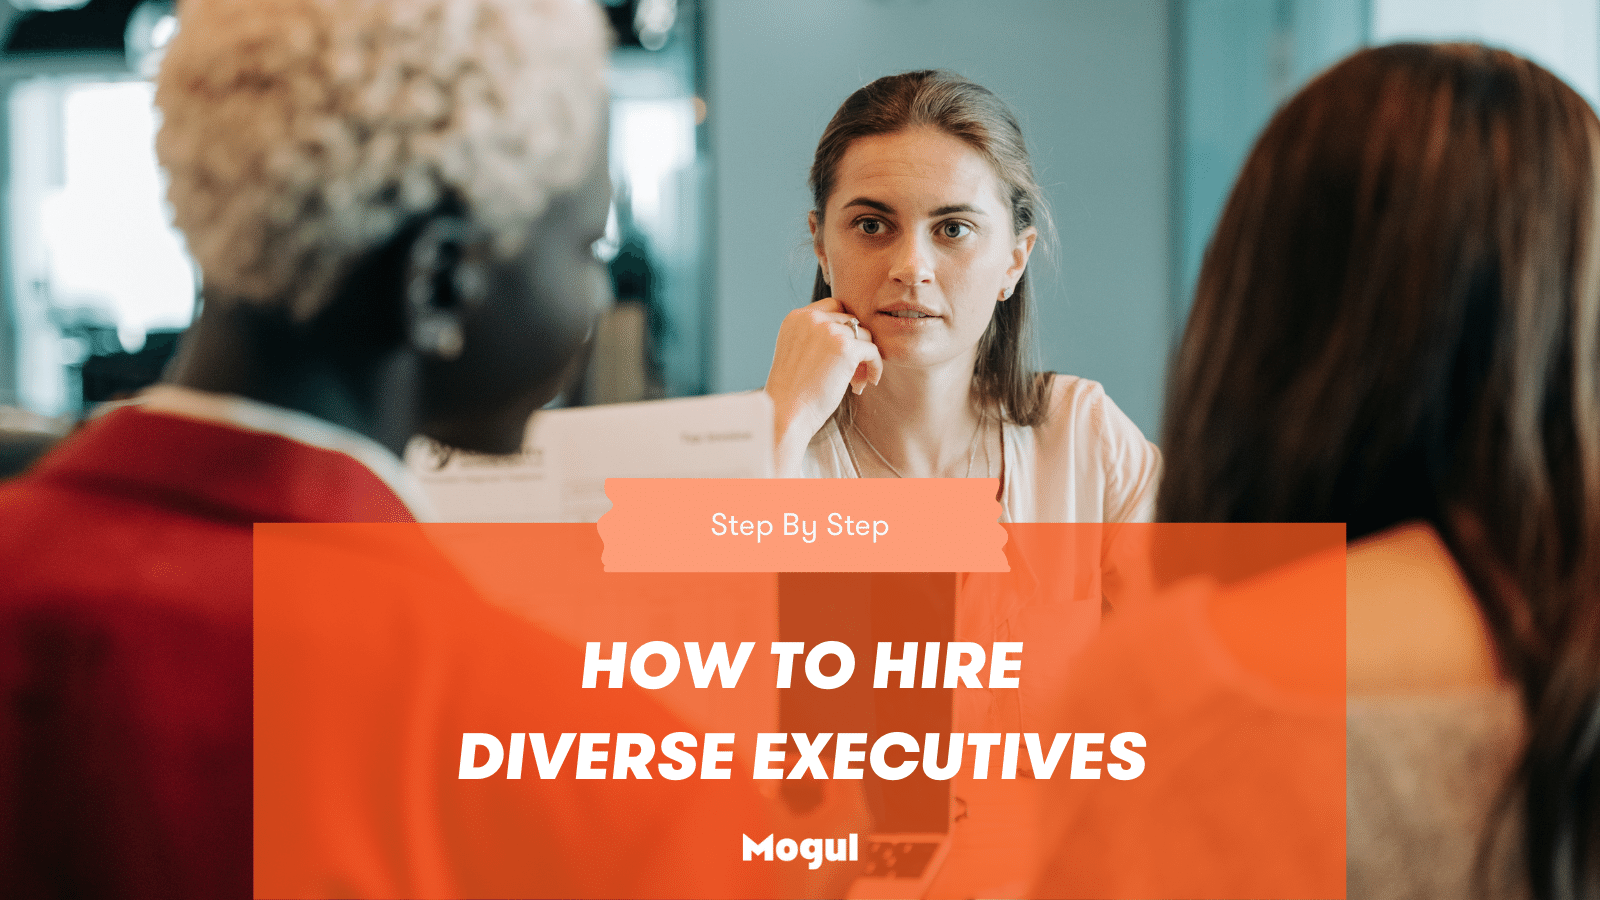 How to Hire Diverse Executives